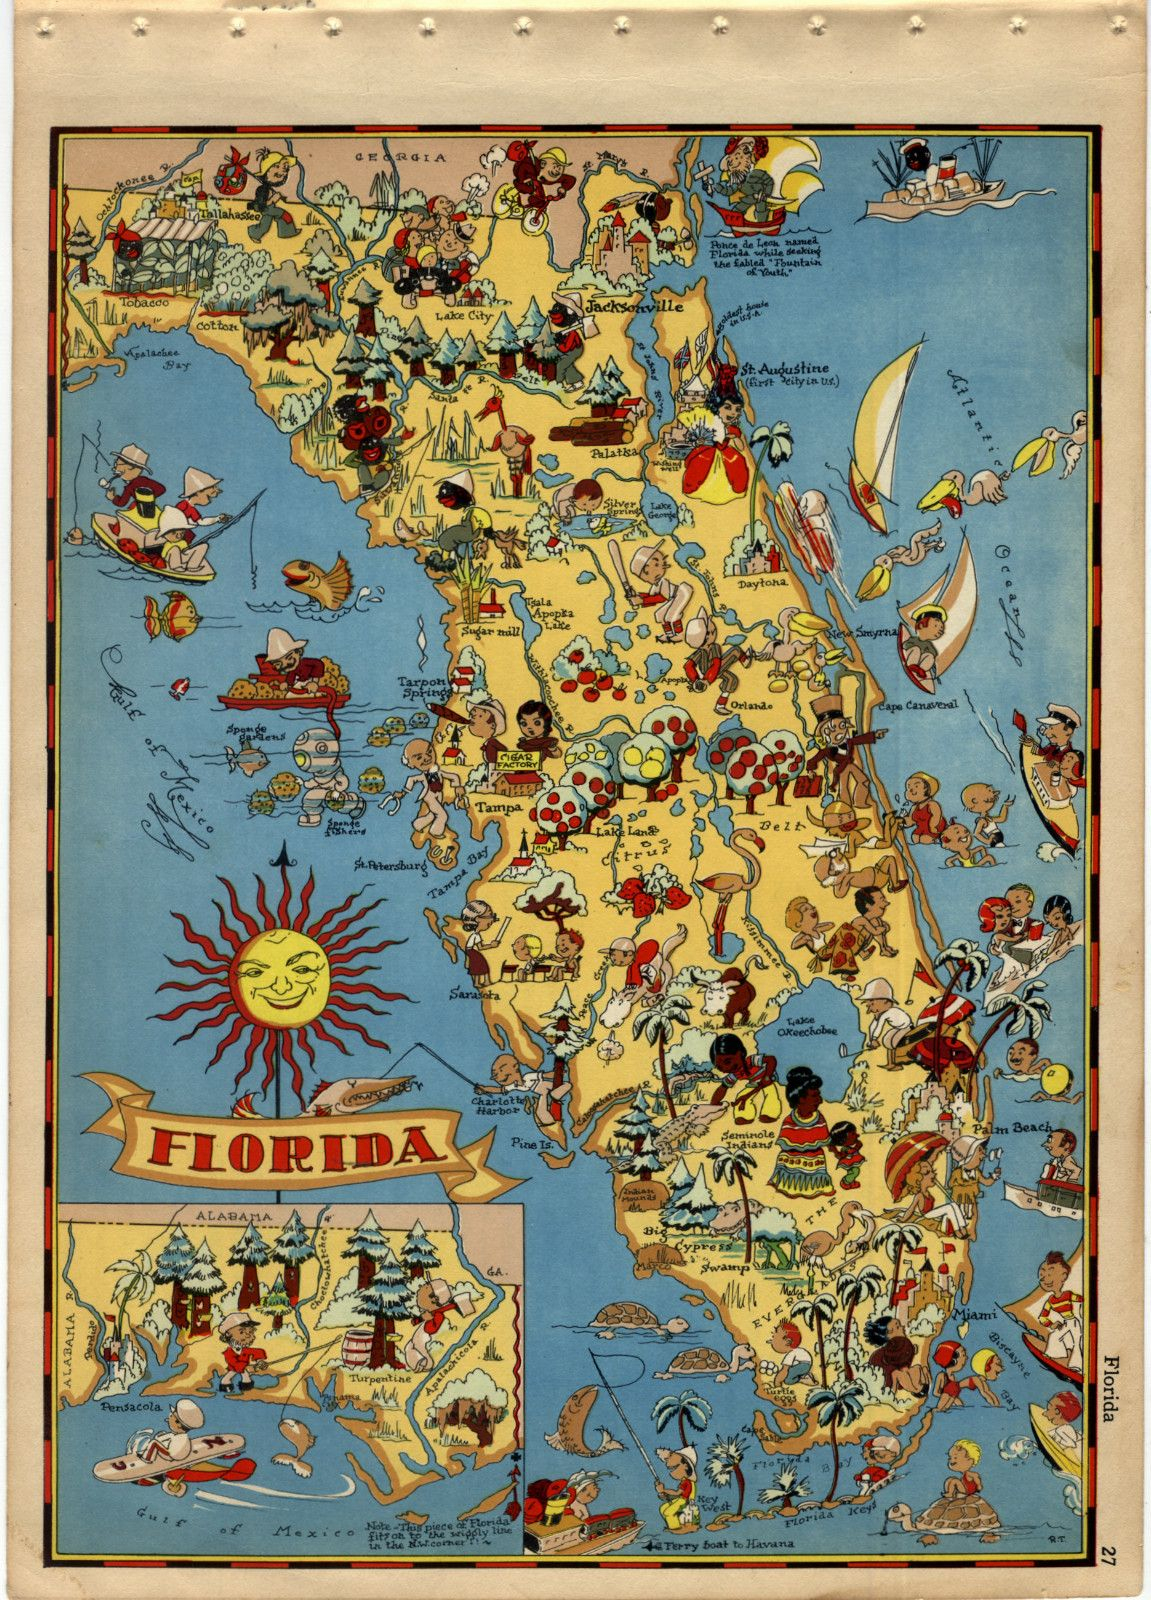 Vintage Florida Map | Obsessed With Maps  | Vintage Florida - Vintage Florida Map